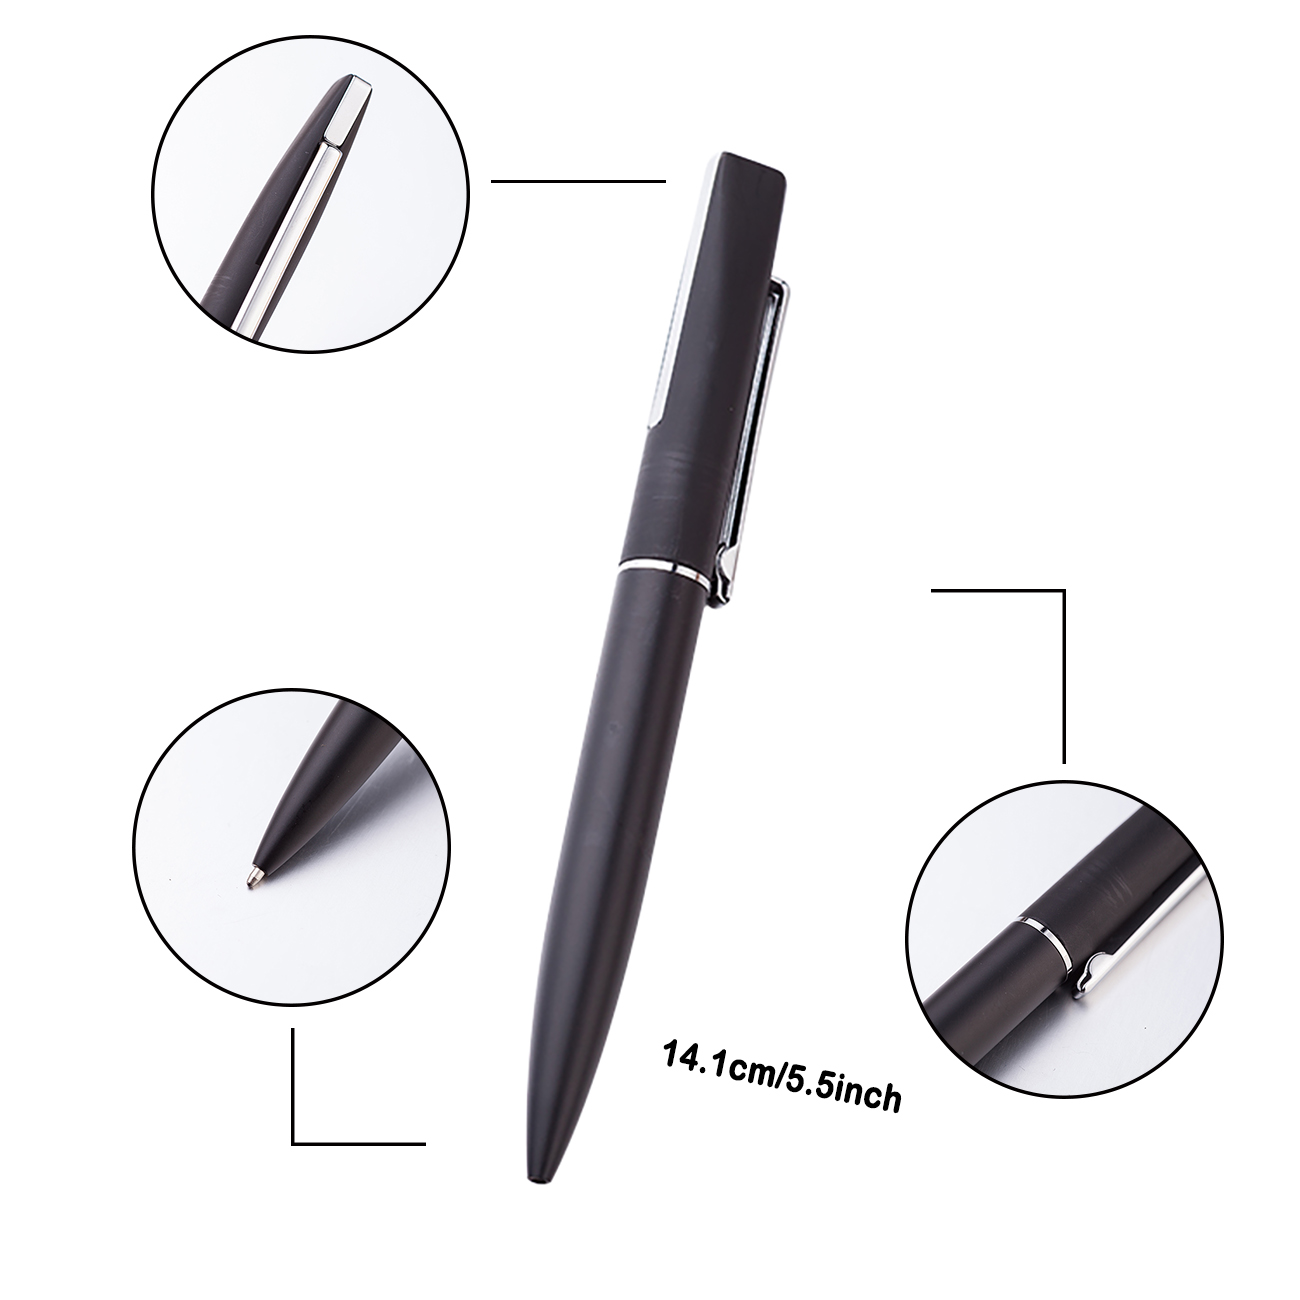 Huahao brand metal ball point pen promotional cheap with custom logo high quality pen for promotion gift